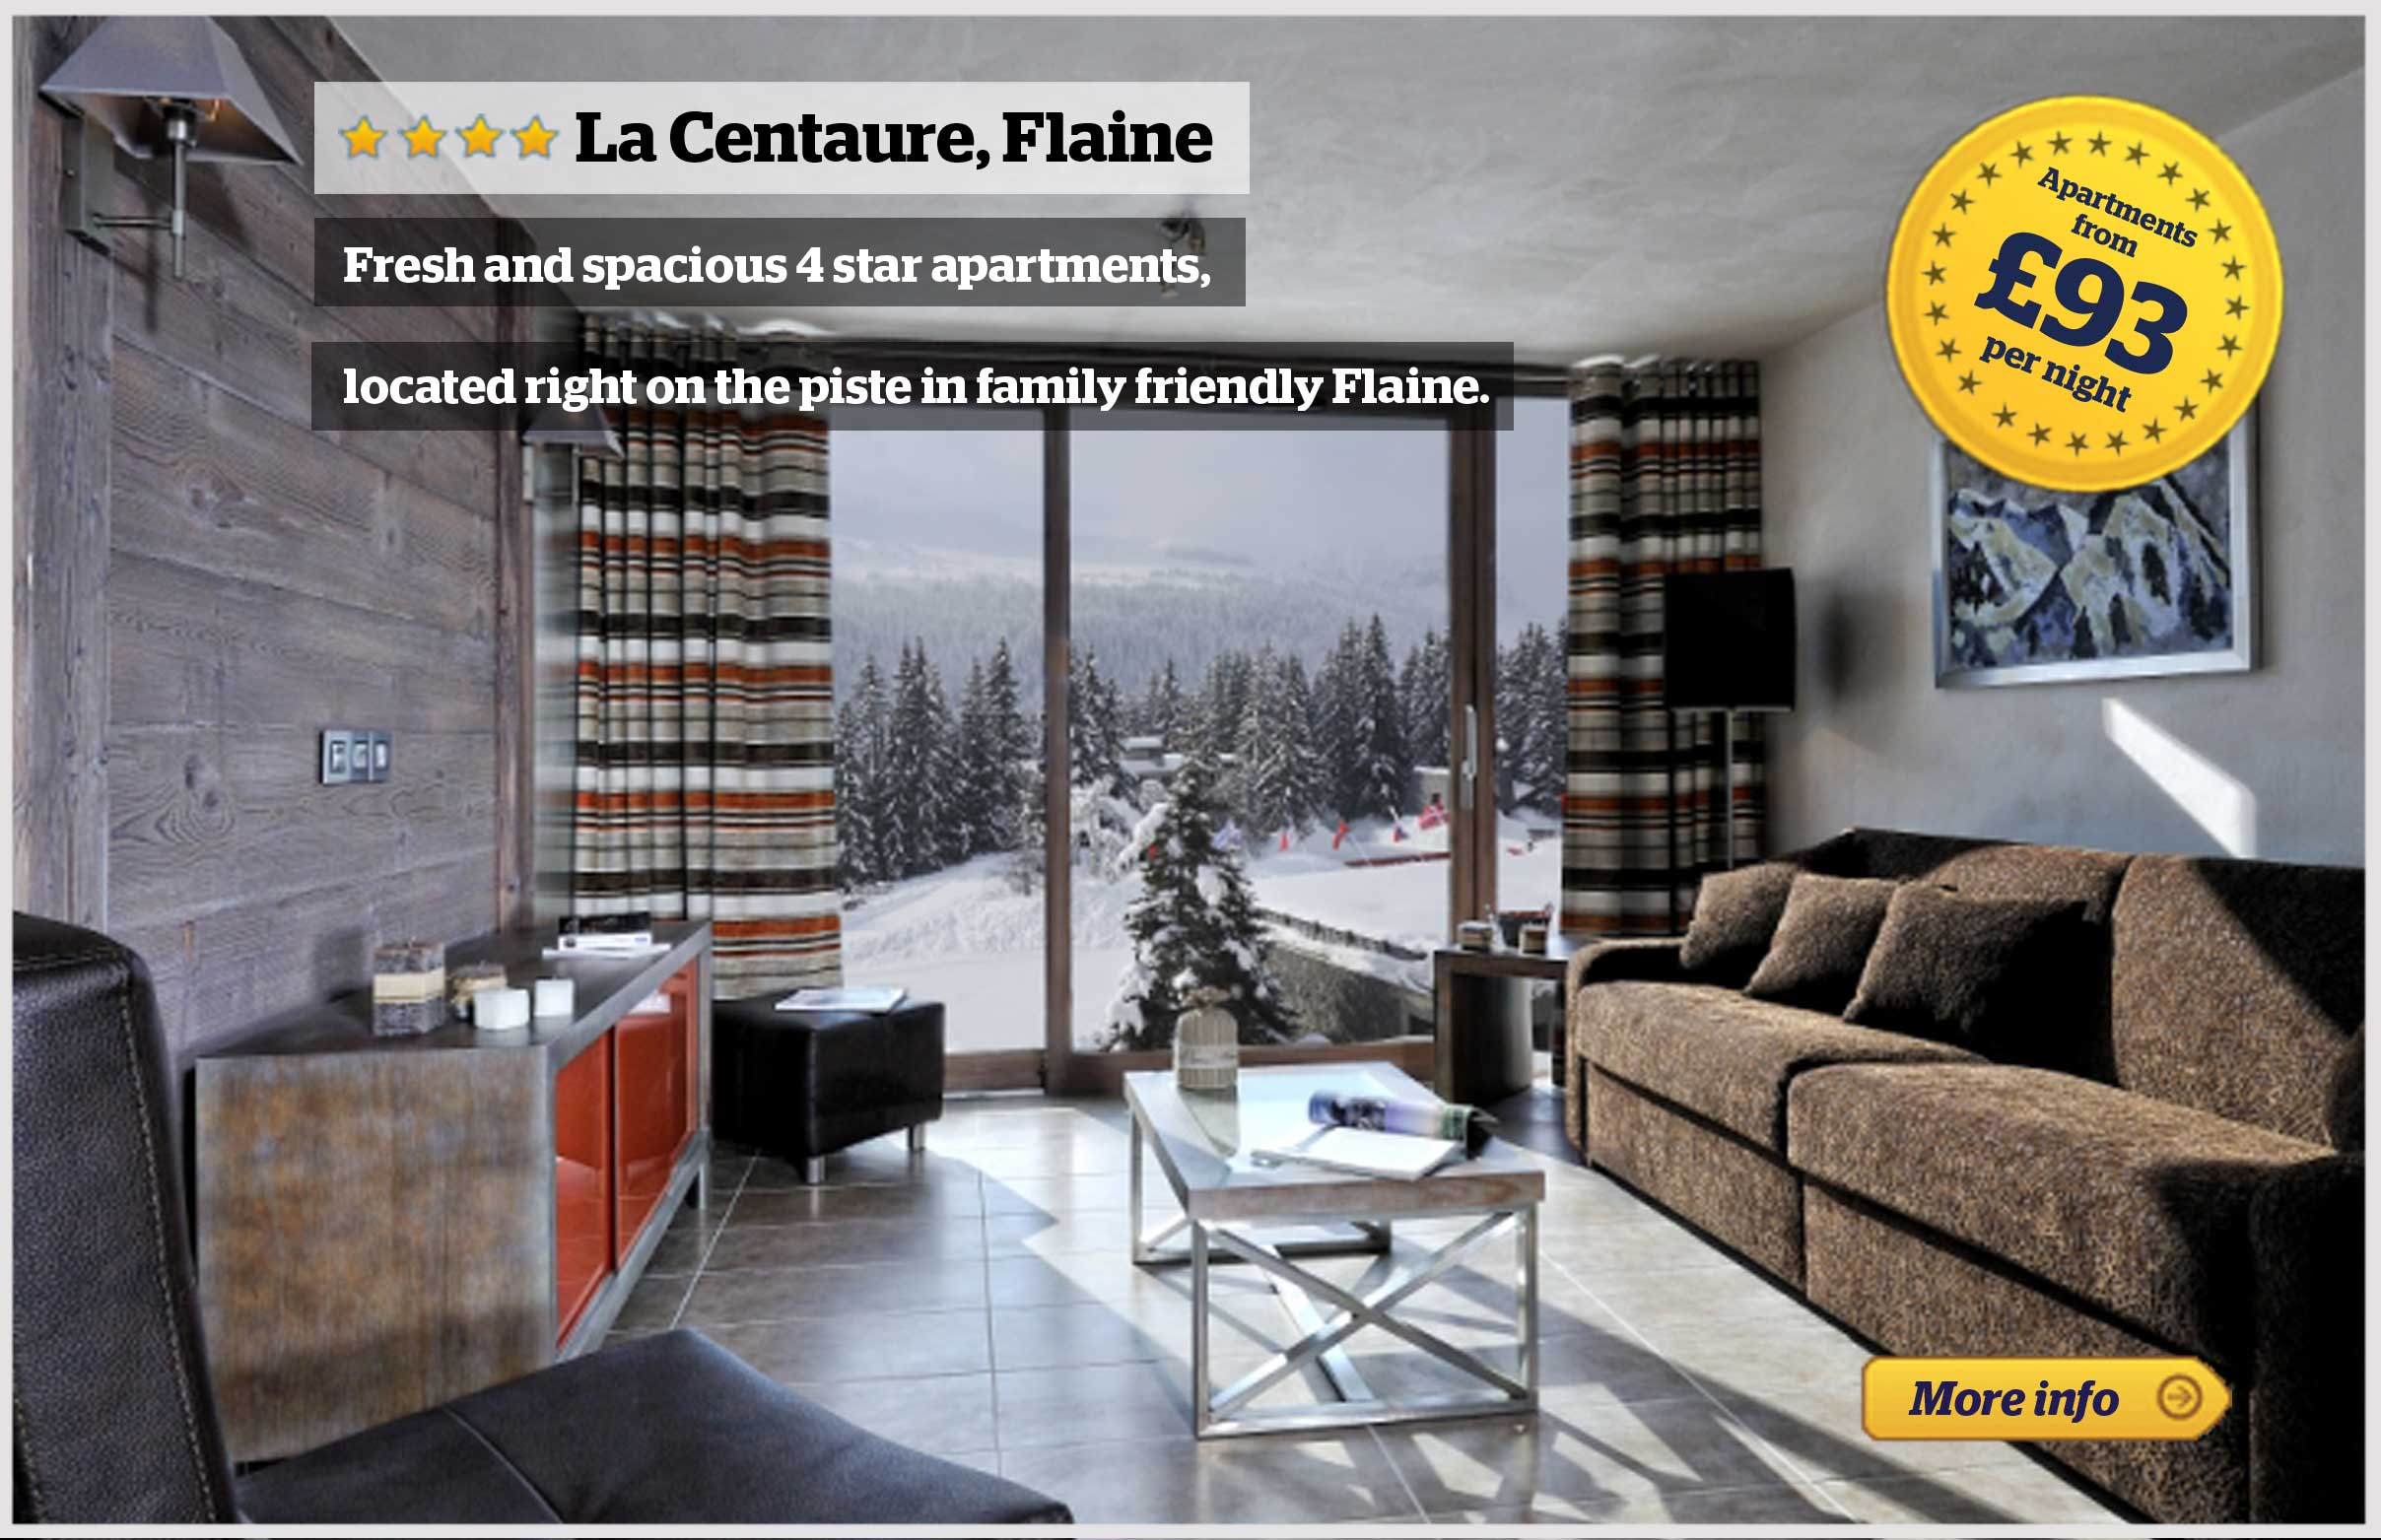 Offer - La Centaure, Flaine